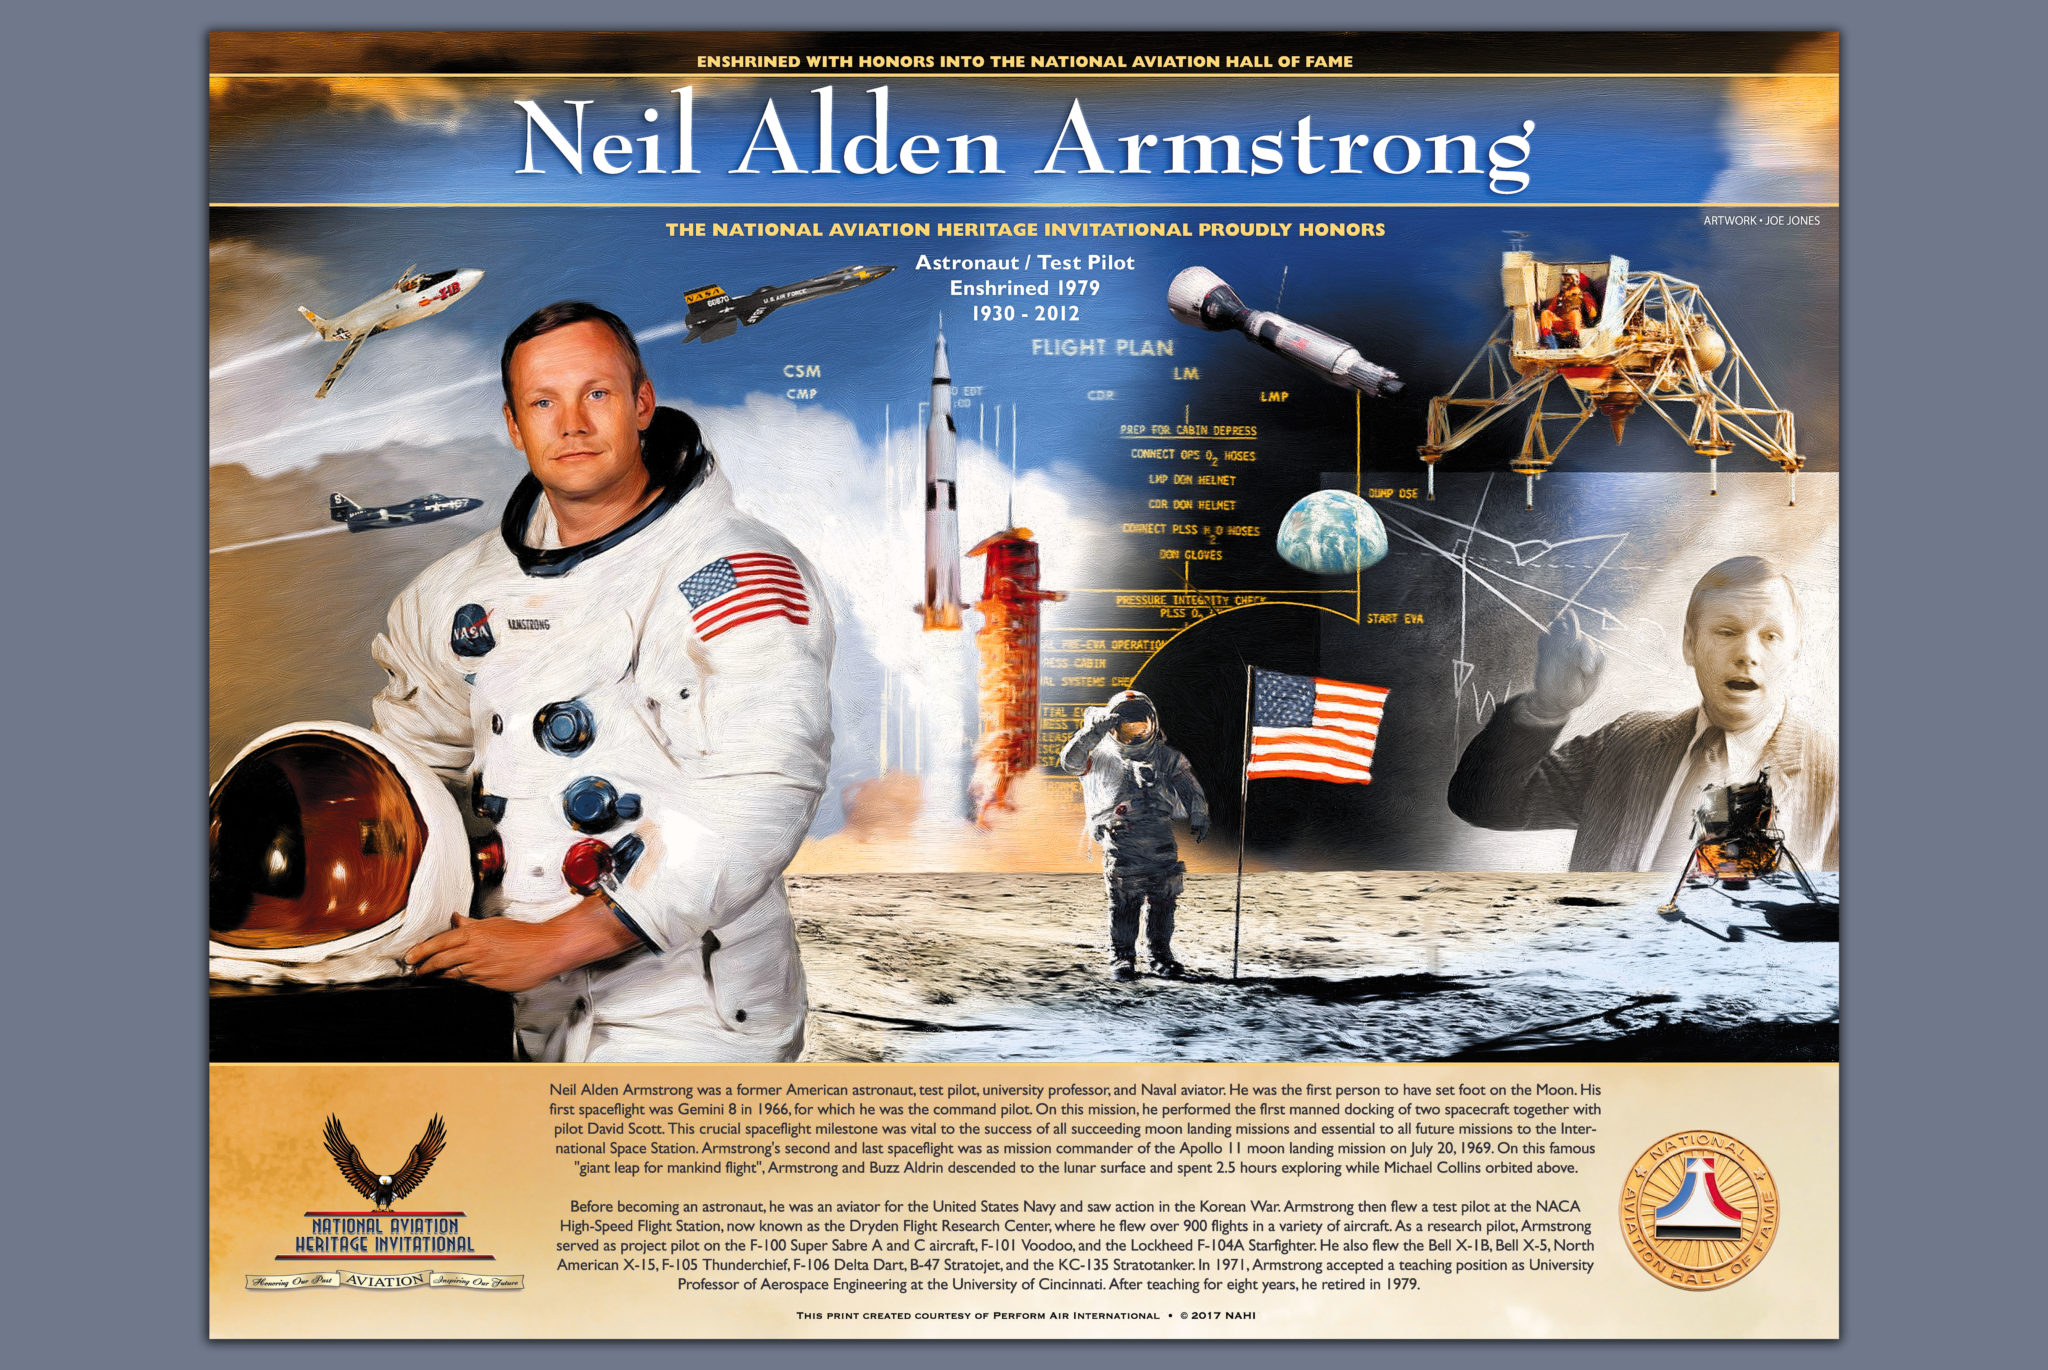 Preview of National Aviation Heritage Invitational Neil A. Armstrong Print Released